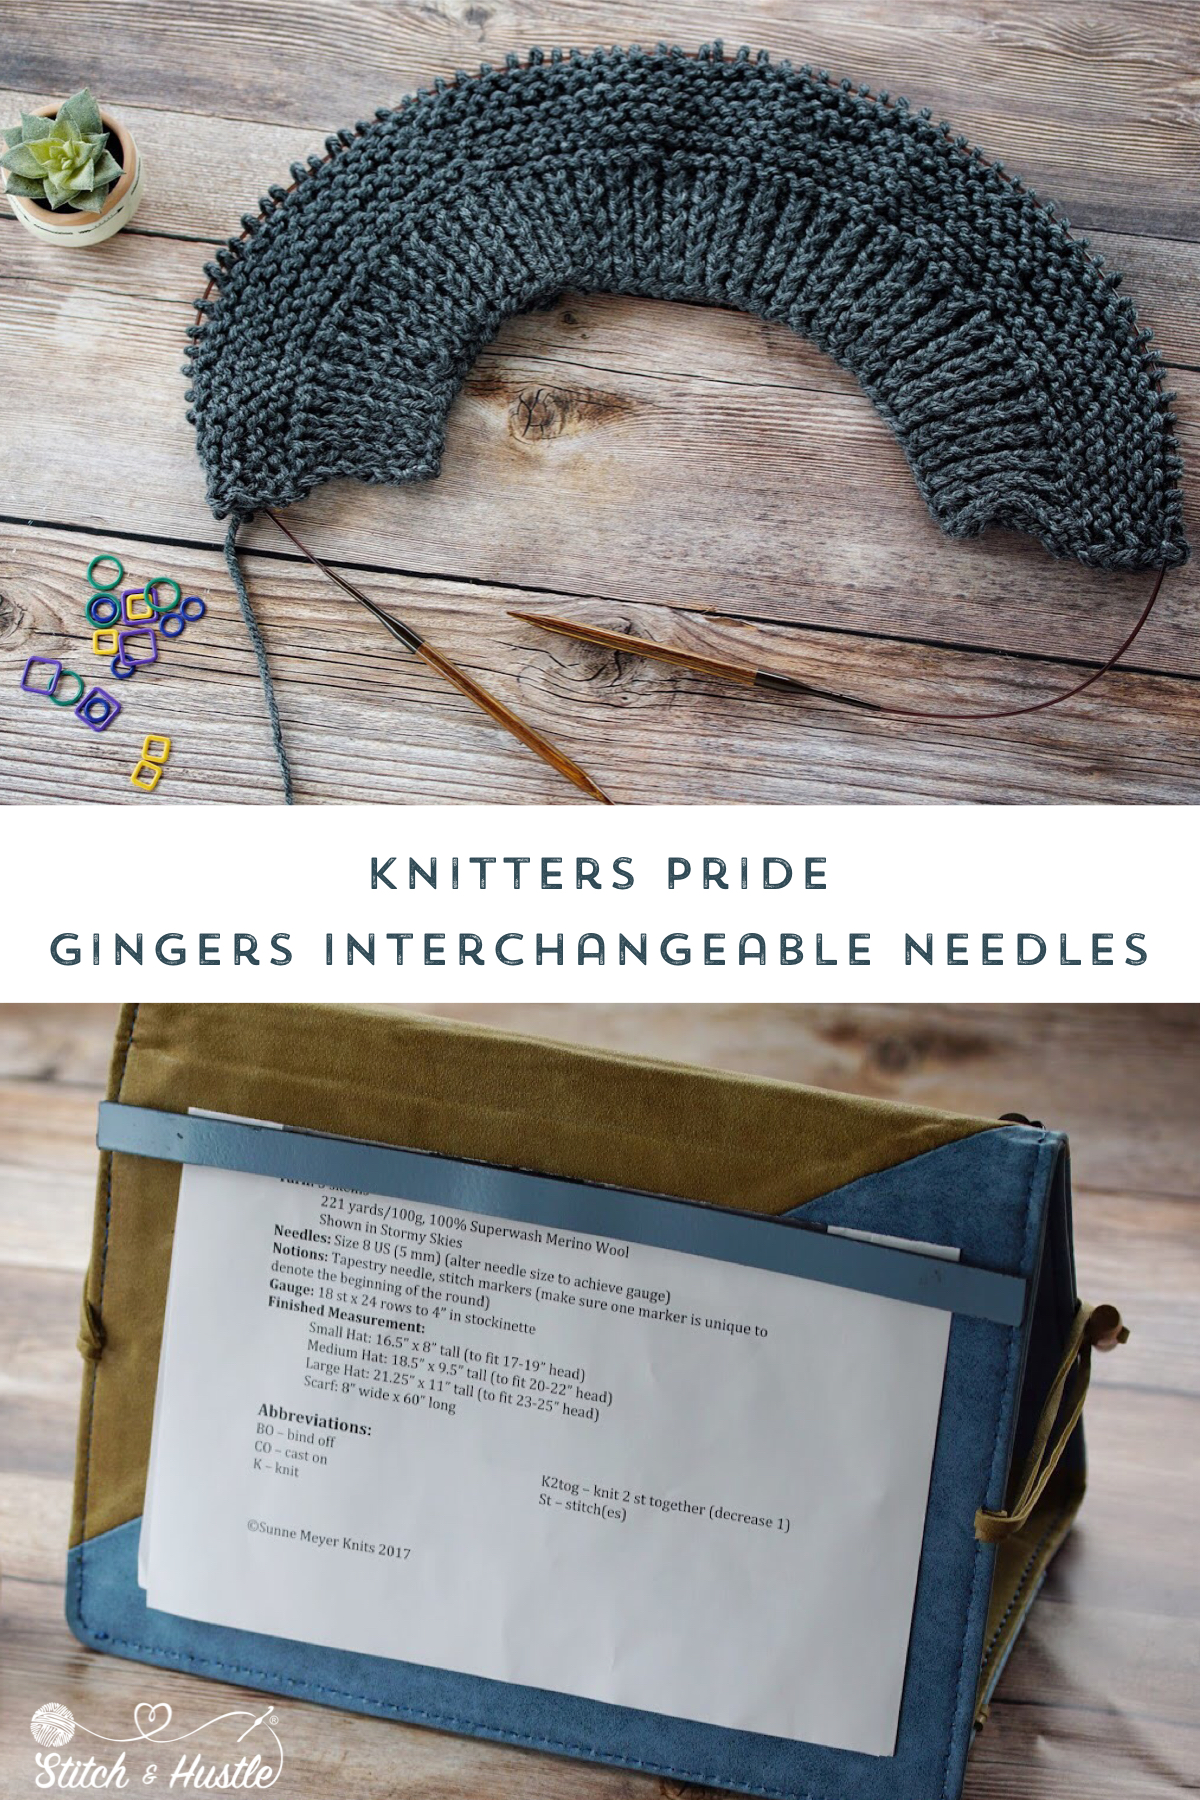 Knitters_Pride_Ginger_Interchangeable_Circular_Knitting_Needles_Review_5.jpg